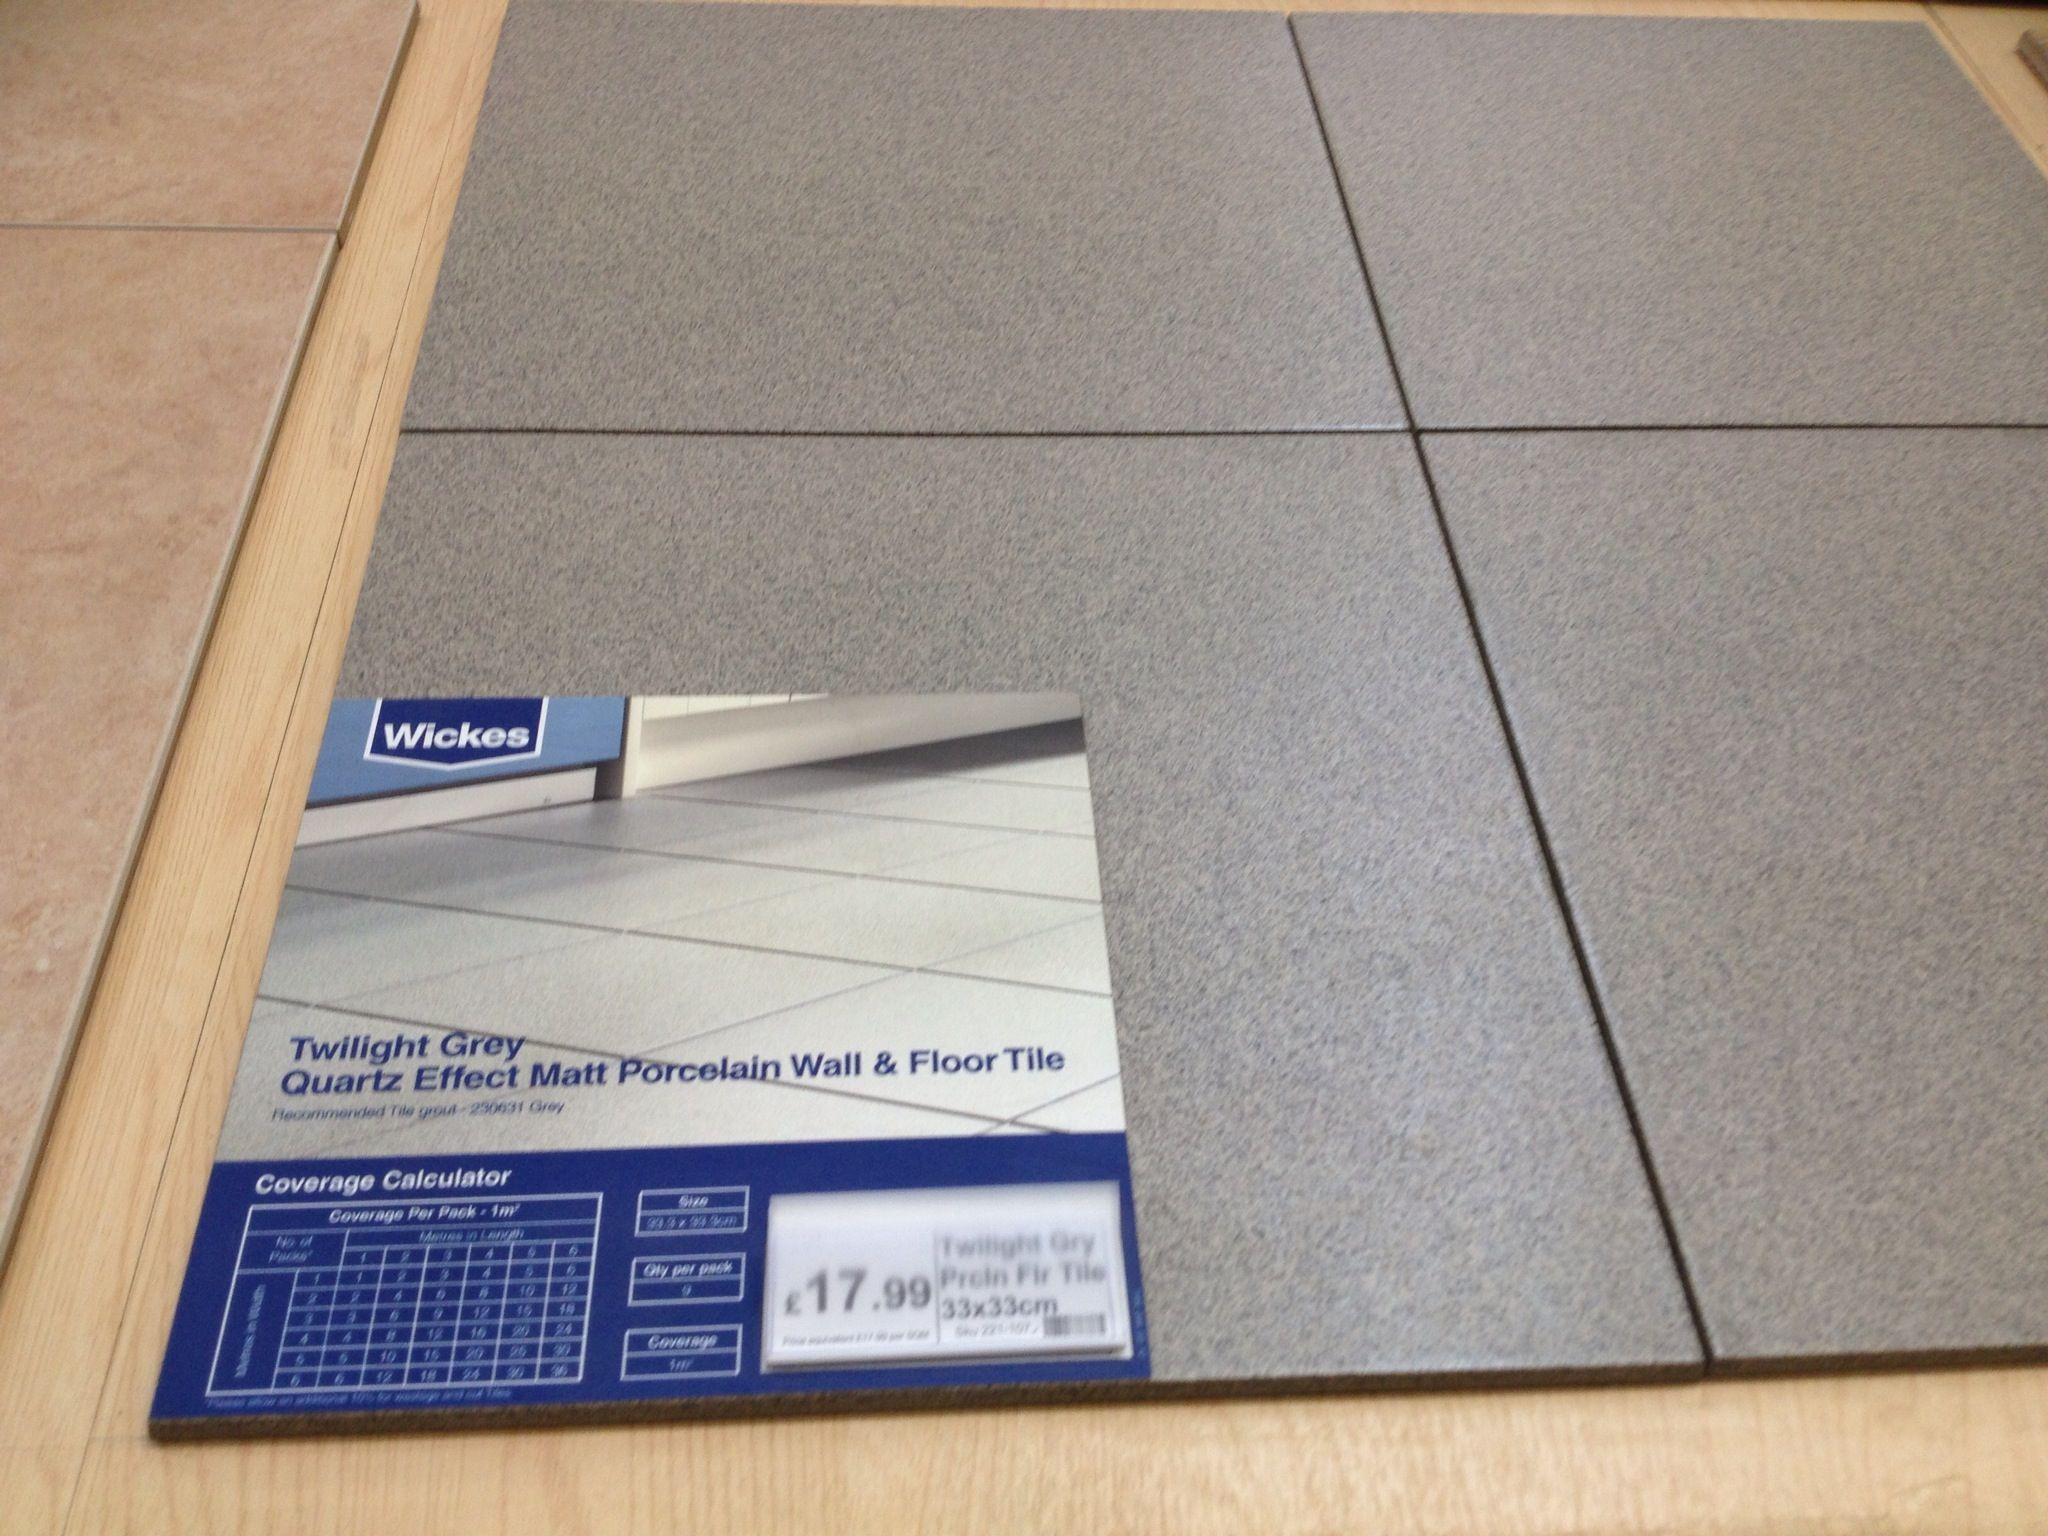 Bathroom Toilet Floor Tiles For Cg From Wickes